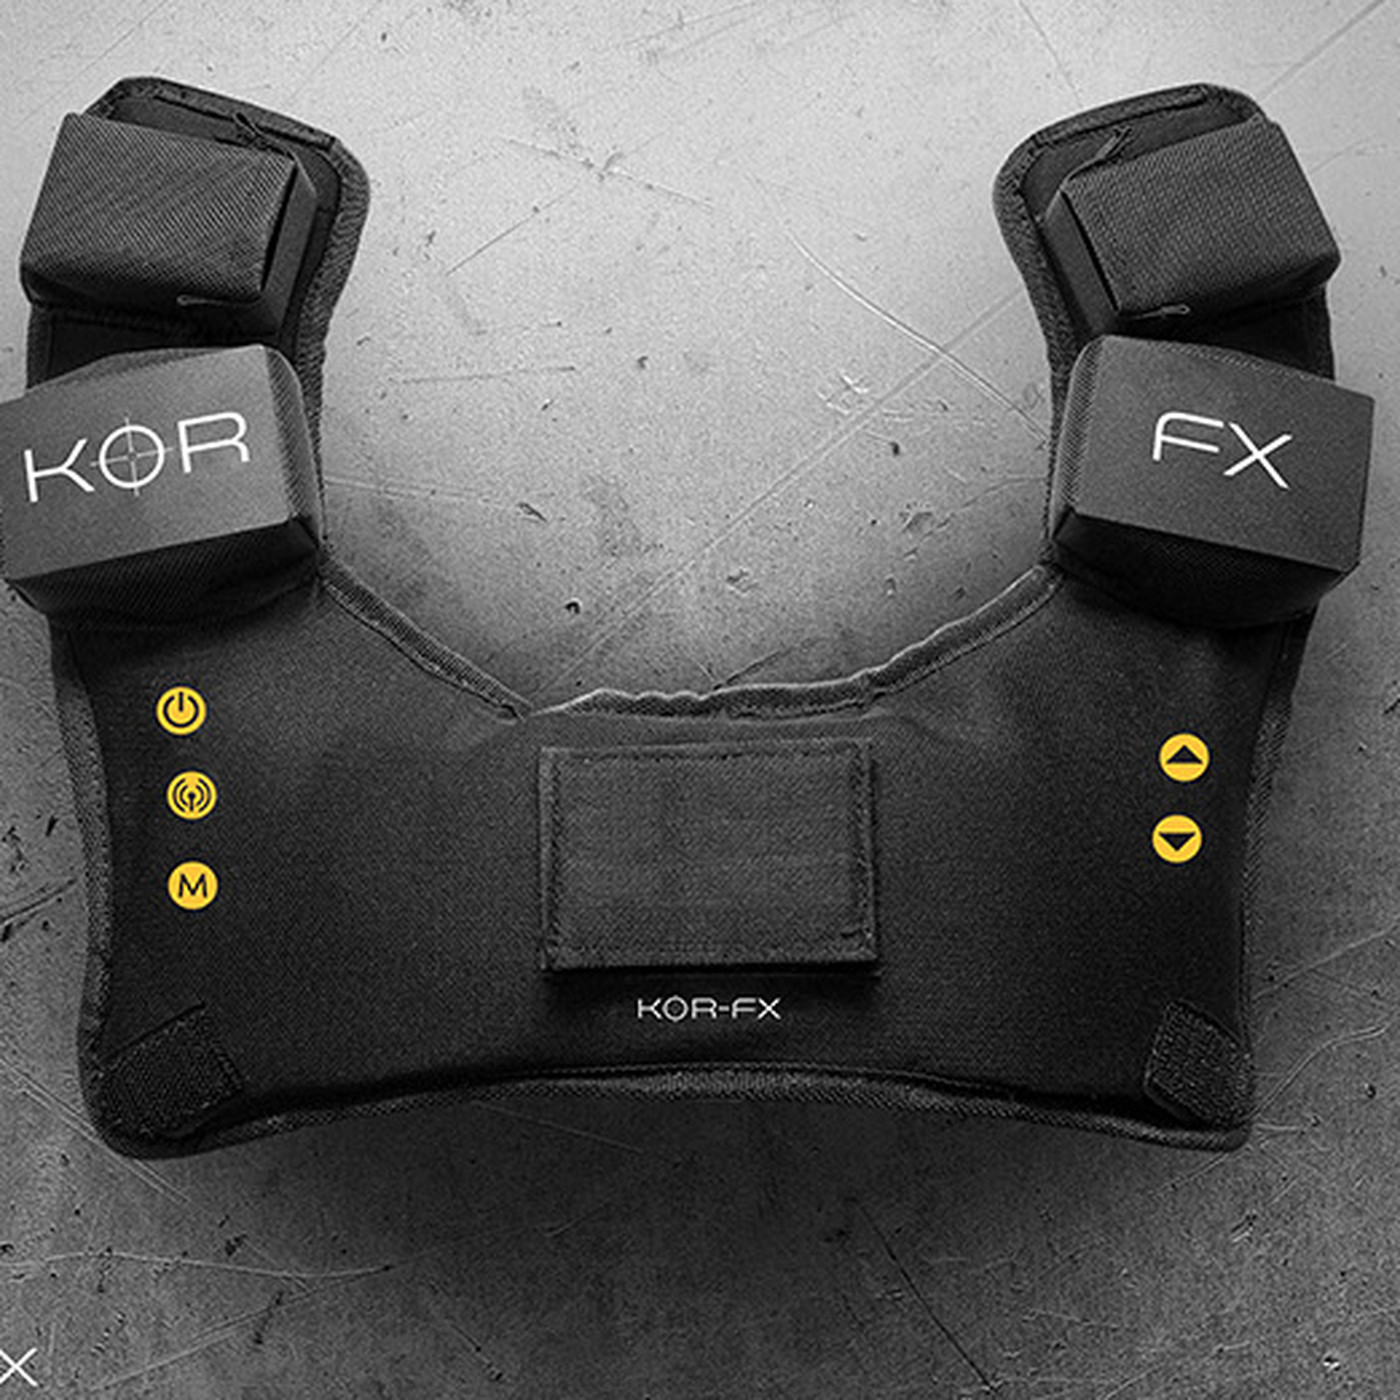 The KOR-FX haptic vest looks stupid, is a pain to set up, feels